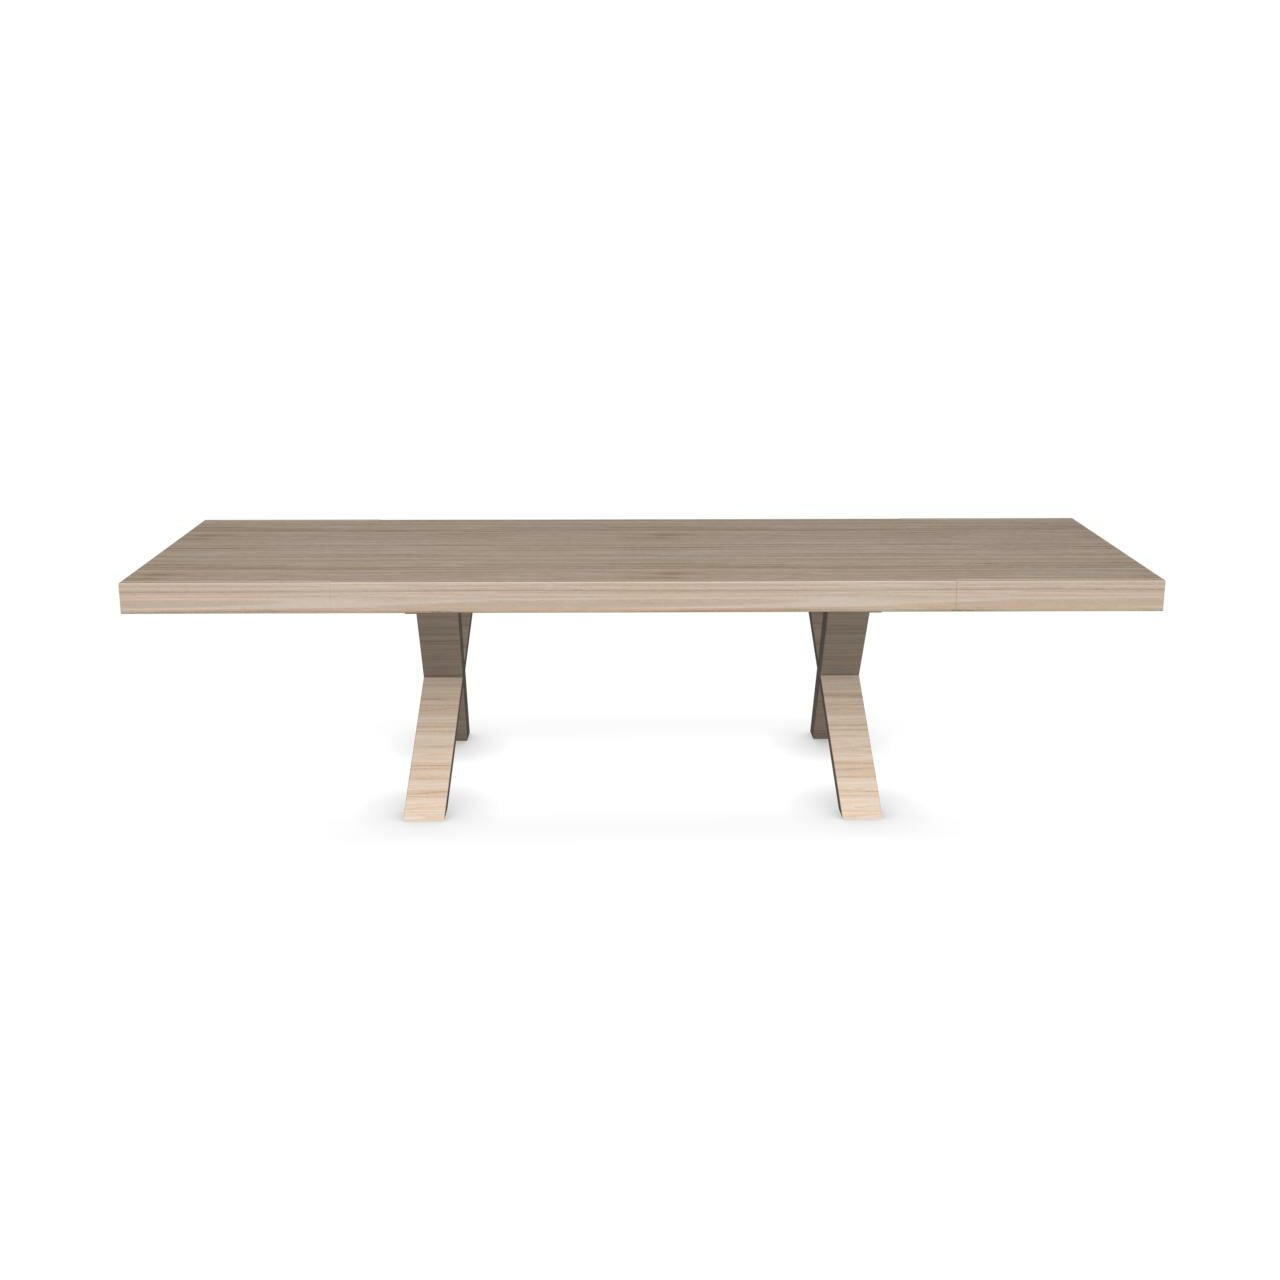 Adorable Design Of Extendable Square Dining Tables - Best Home ...